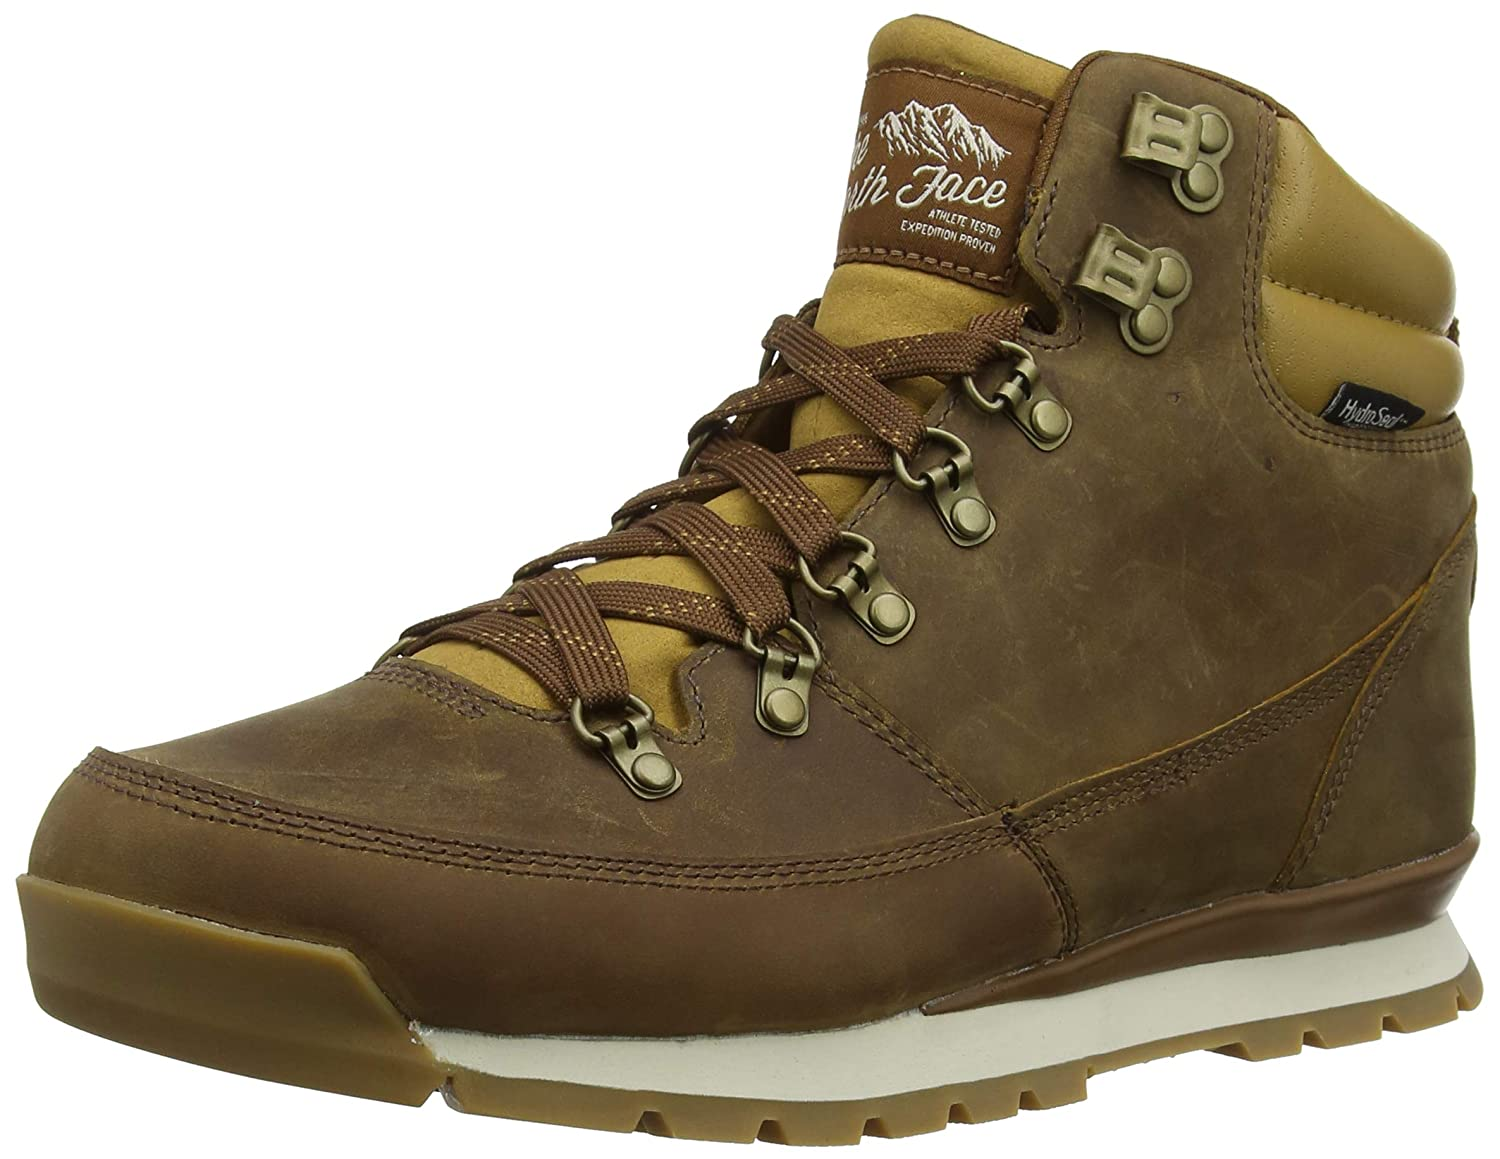 TALLA 43 EU. The North Face Back-to-Berkeley Redux Leather, Botas de Senderismo para Hombre